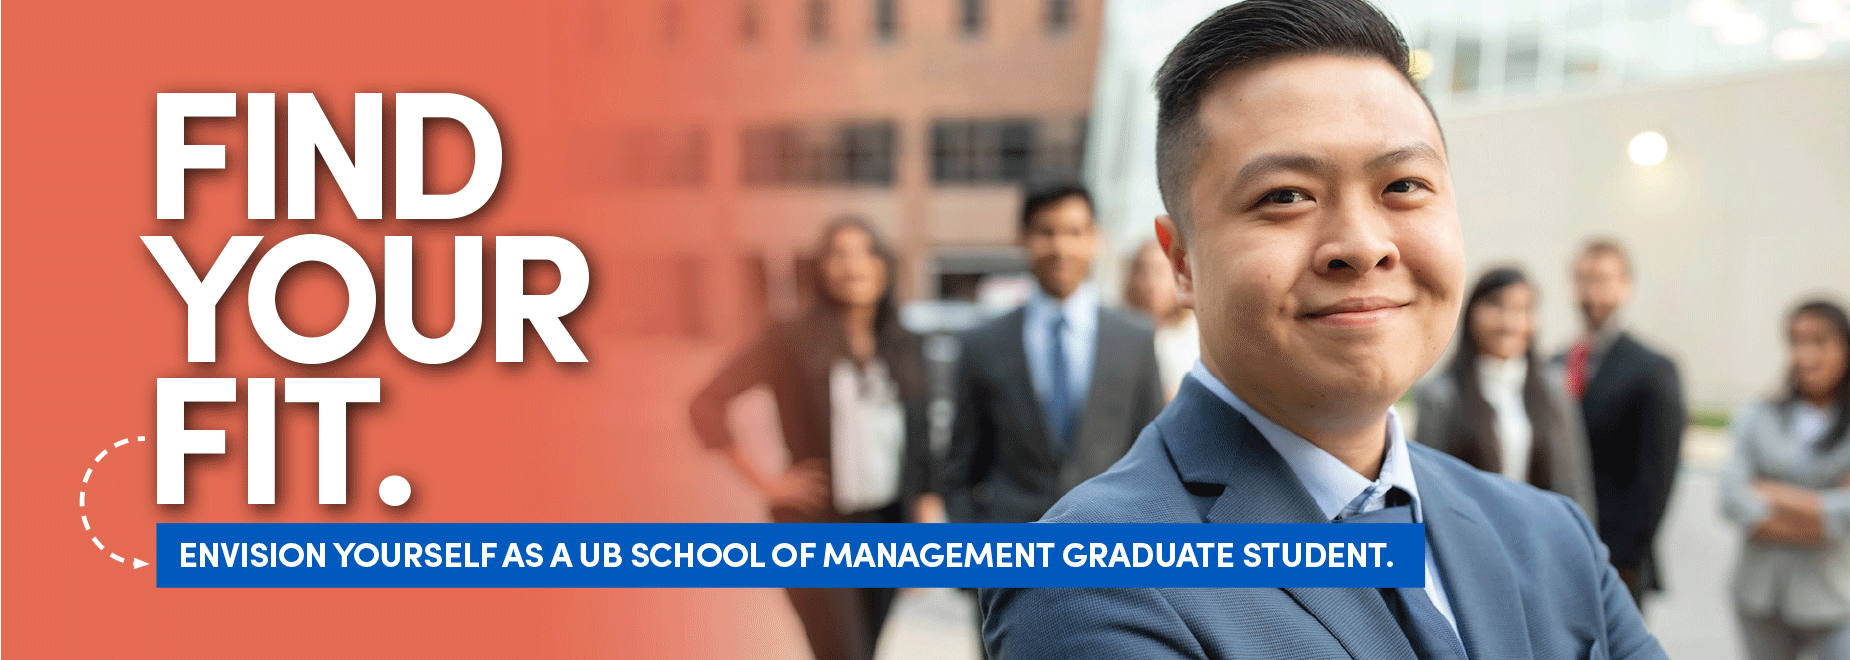 Find your fit. Envision yourself as a UB School of Management Graduate Student.